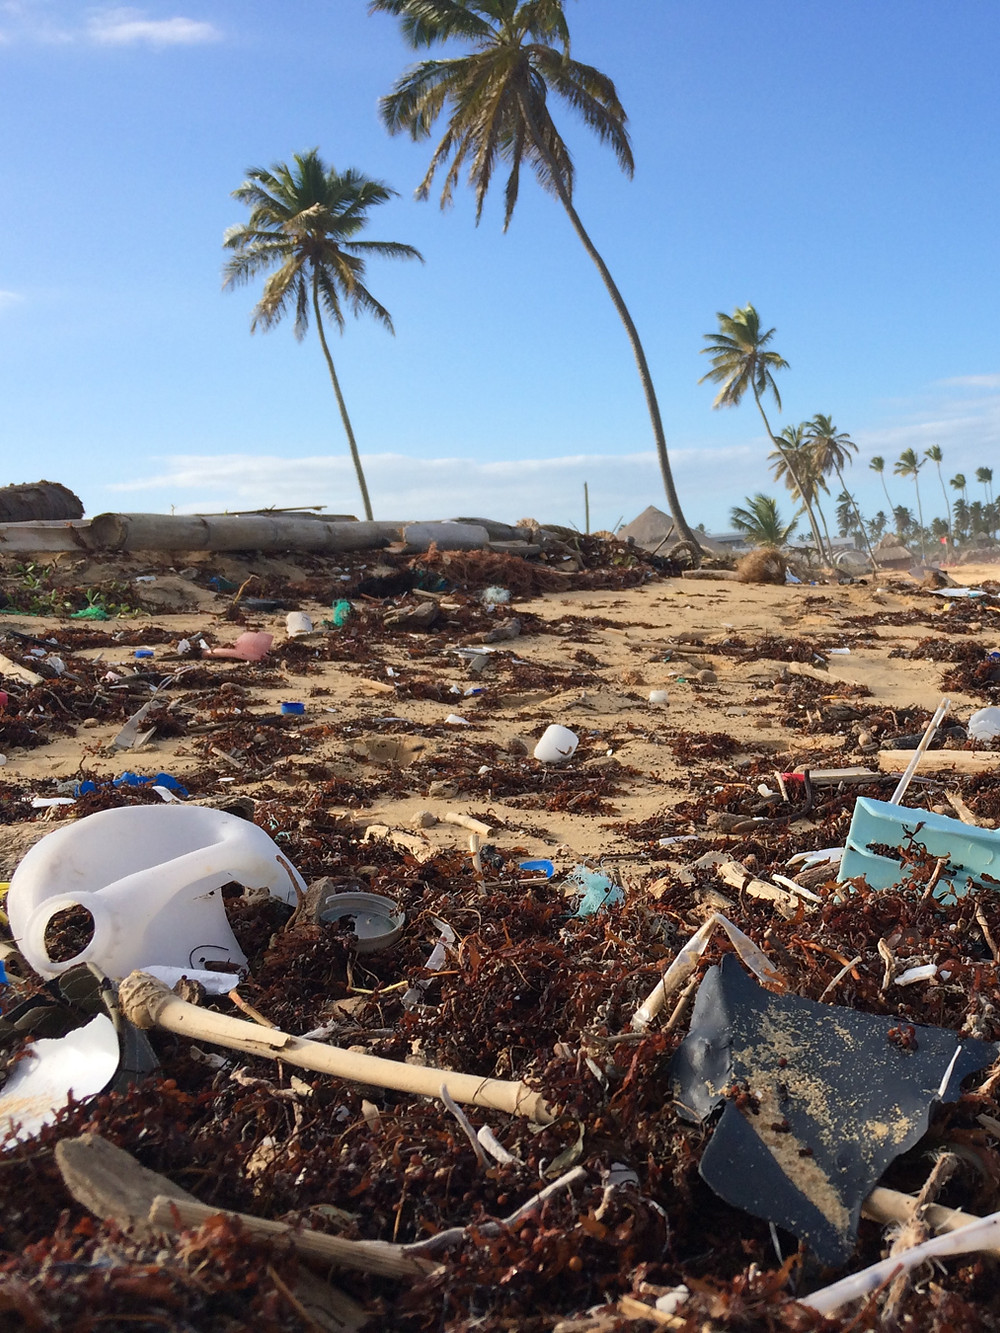 How to avoid buying plastic bottles while traveling